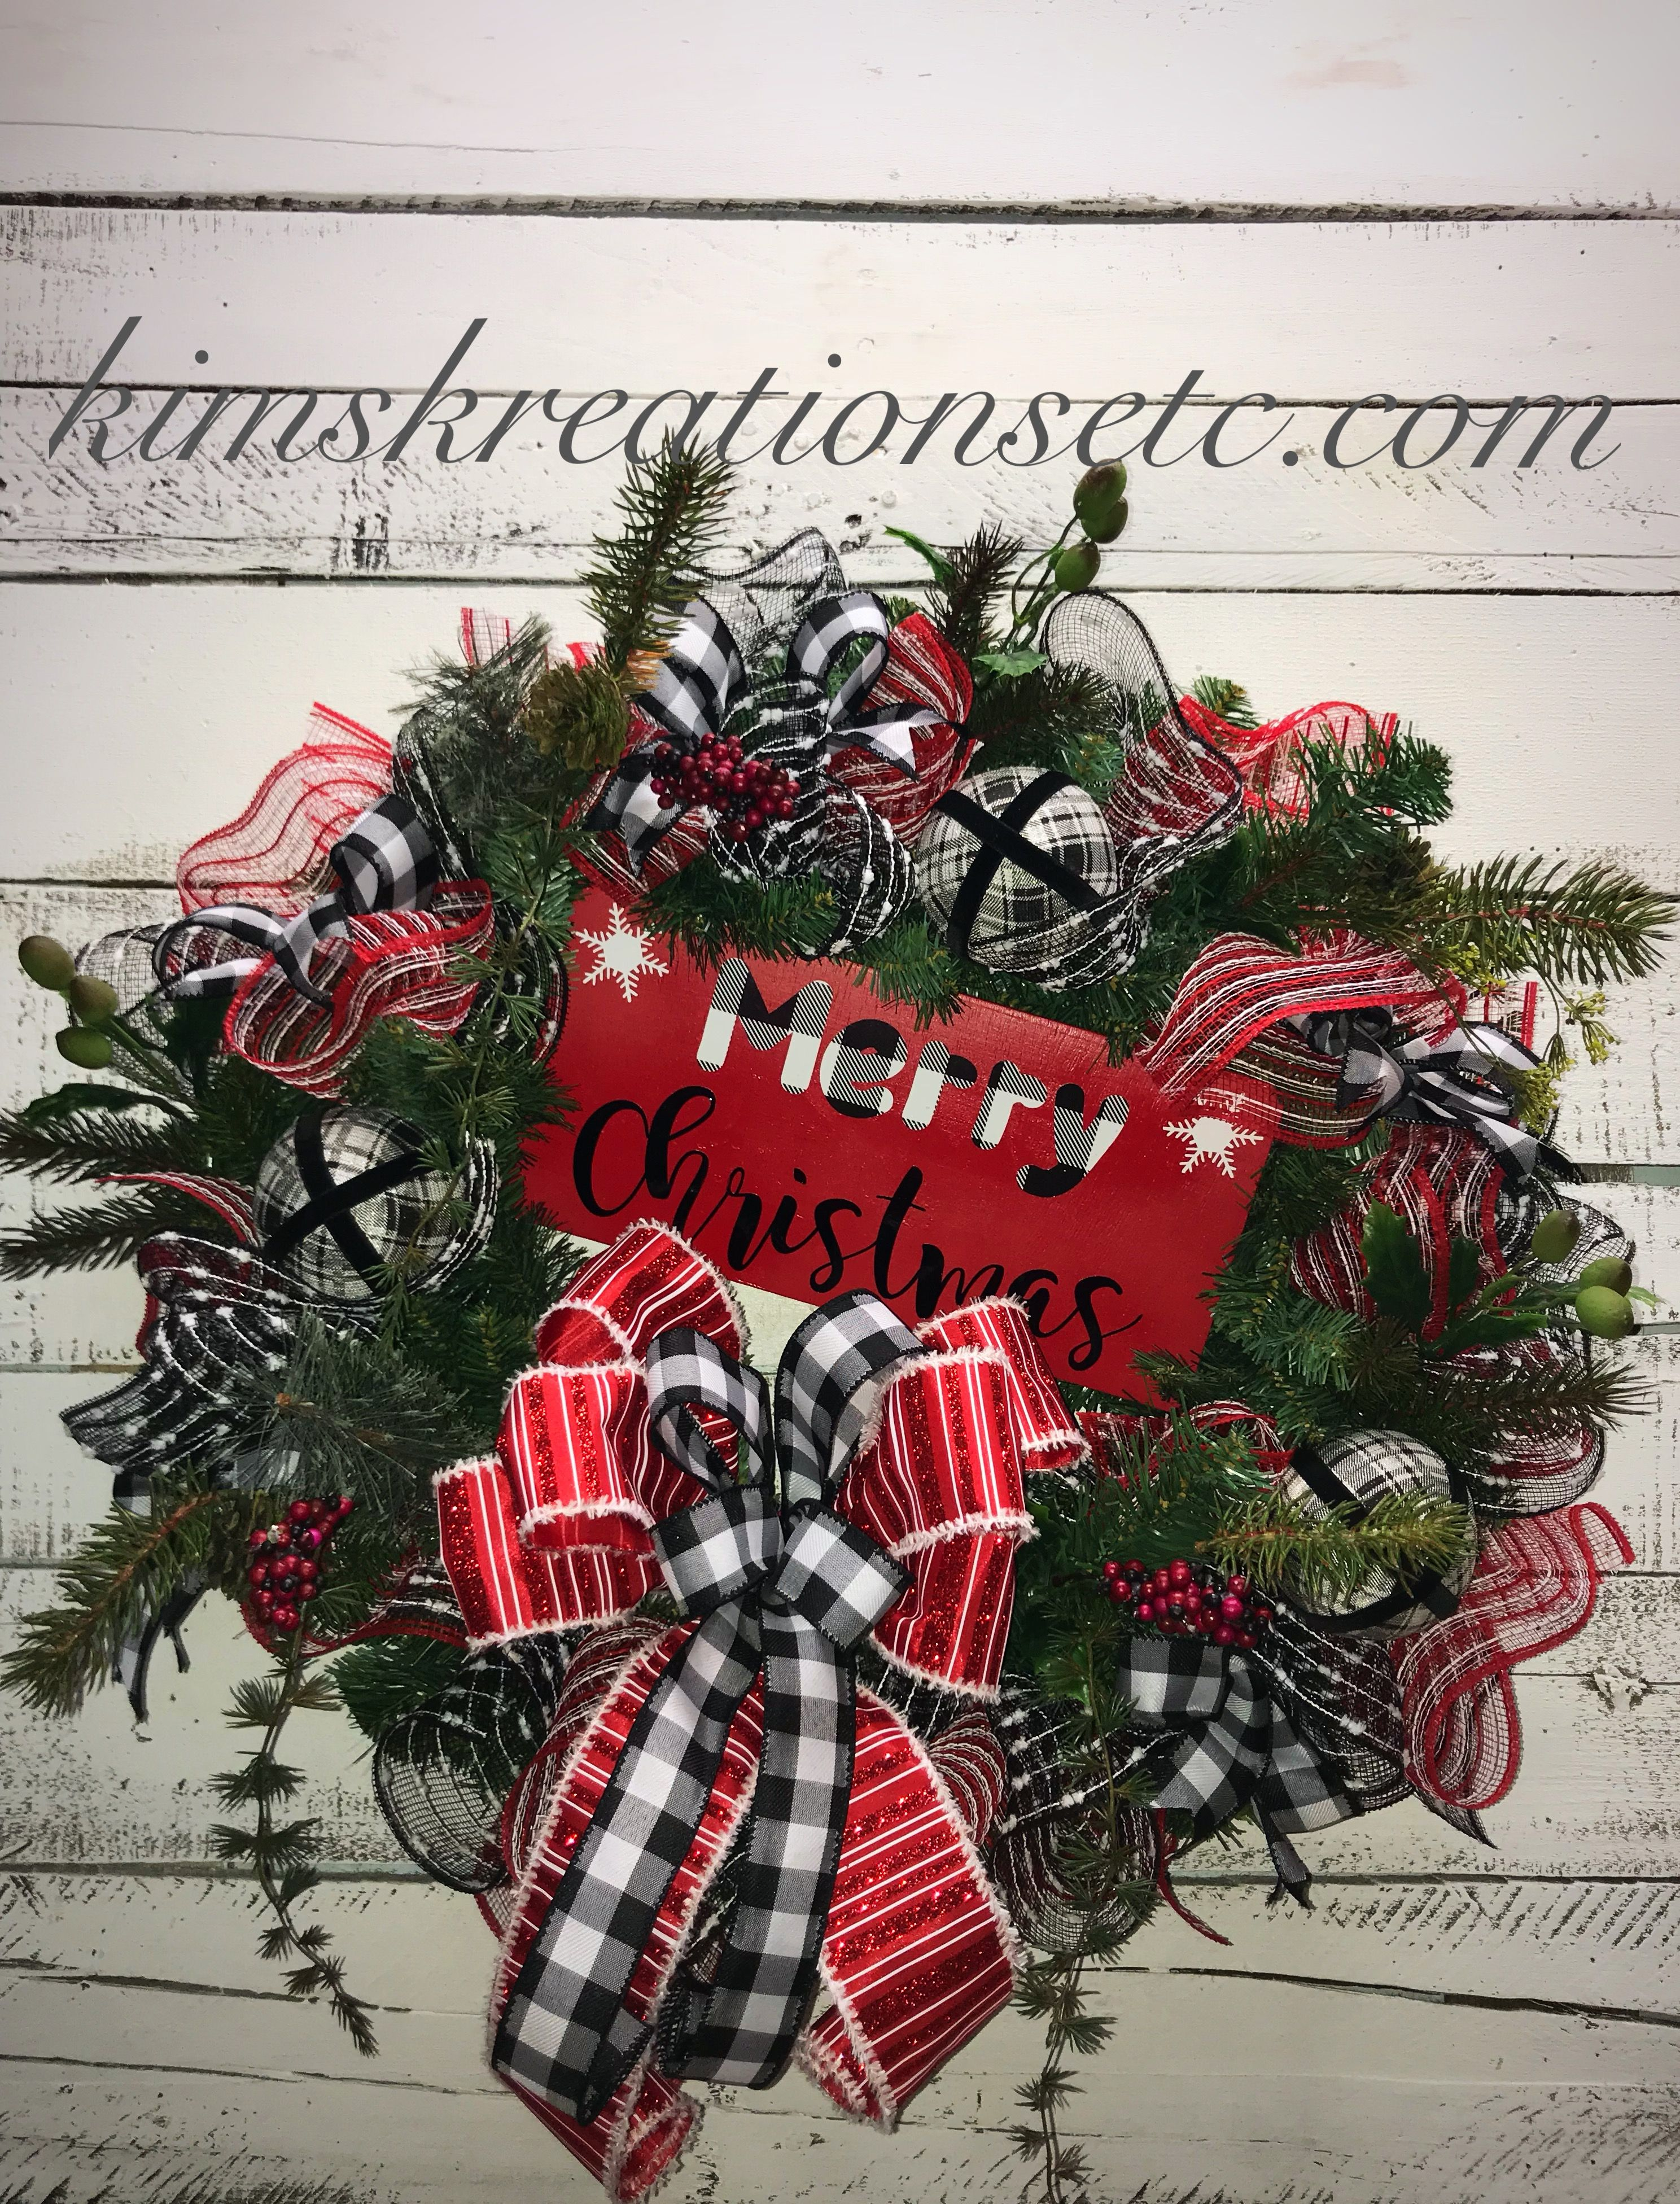 Christmas Wreath Holiday Wreath Christmas Wreath For Front Door Merry Christmas Wreath Black And White Buffalo Plaid Red Black And White Christmas Wreath Christmas Pine Wreath Traditional Christmas Wreath Home Decor Decorative